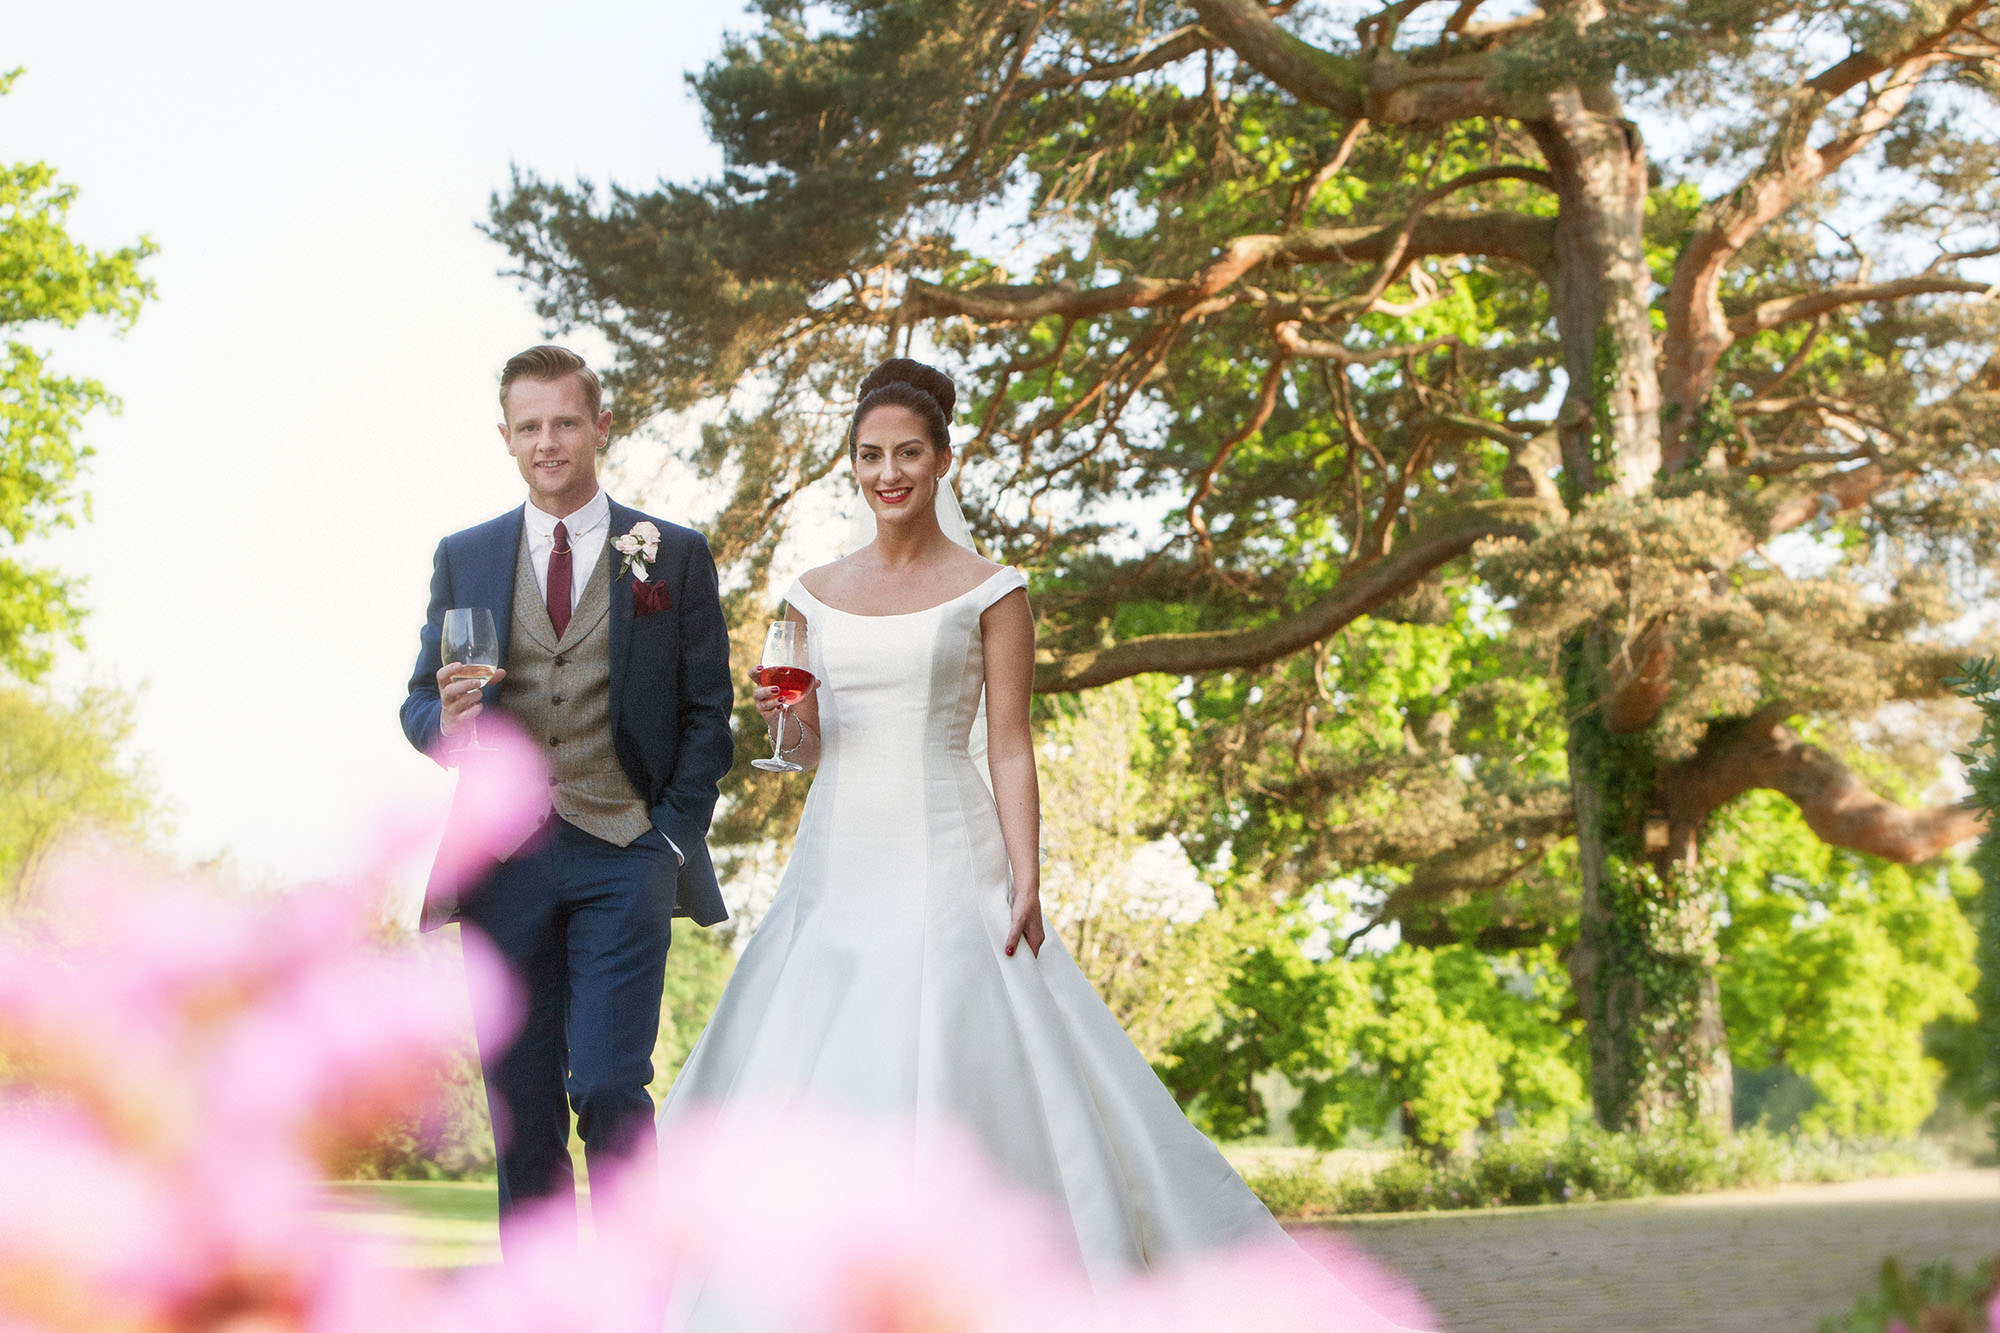 Stephanie And Alan's Wedding At Rockliffe Hall